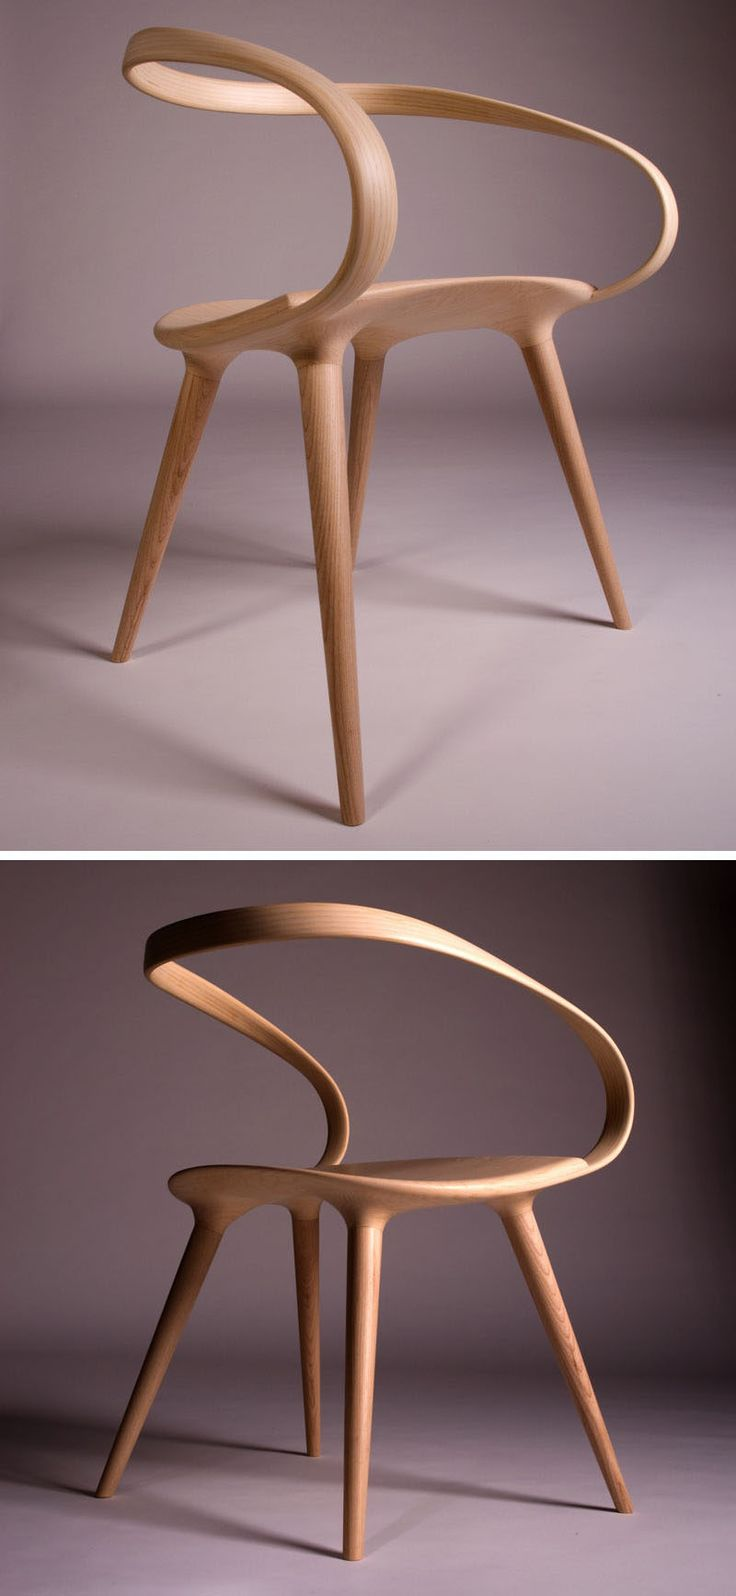 836 best furniture images on Pinterest | Chair design ...